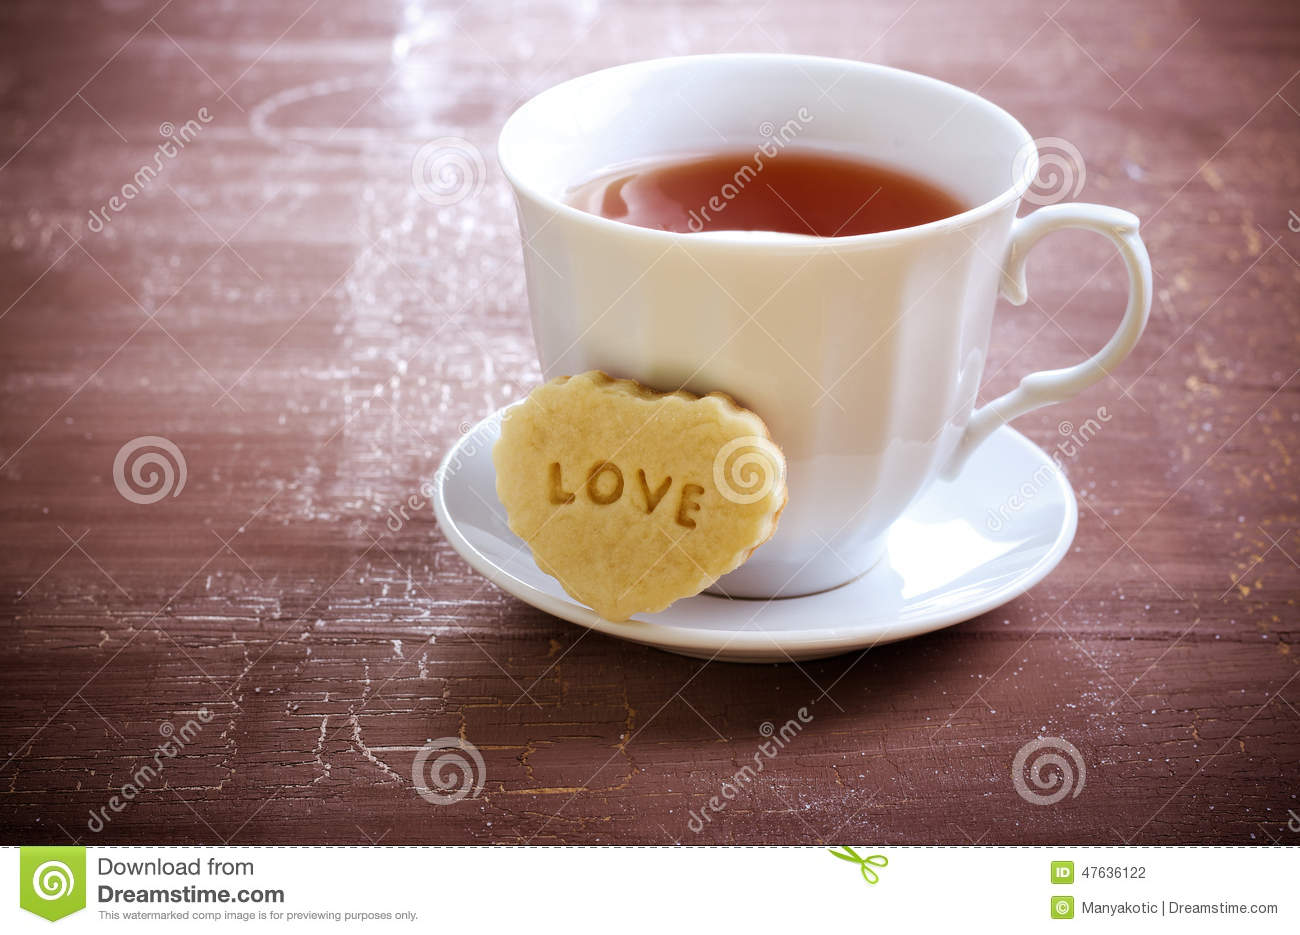 Cup Of Tea And Biscuit Stock Photo Image Of Drink Valentine 47636122